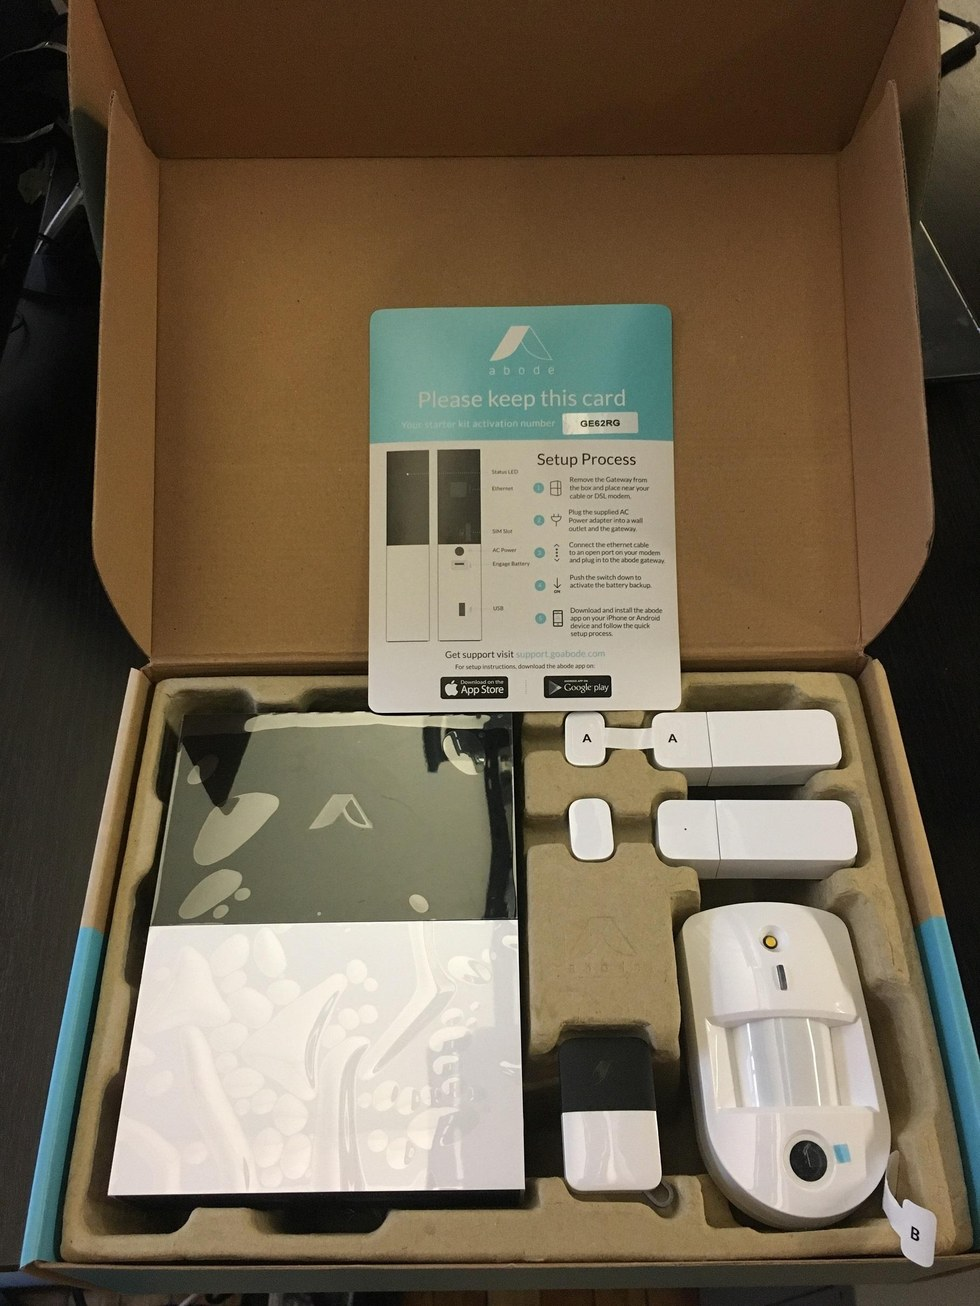 Review Abode Starter Kit Offers Flexible Diy Home Security